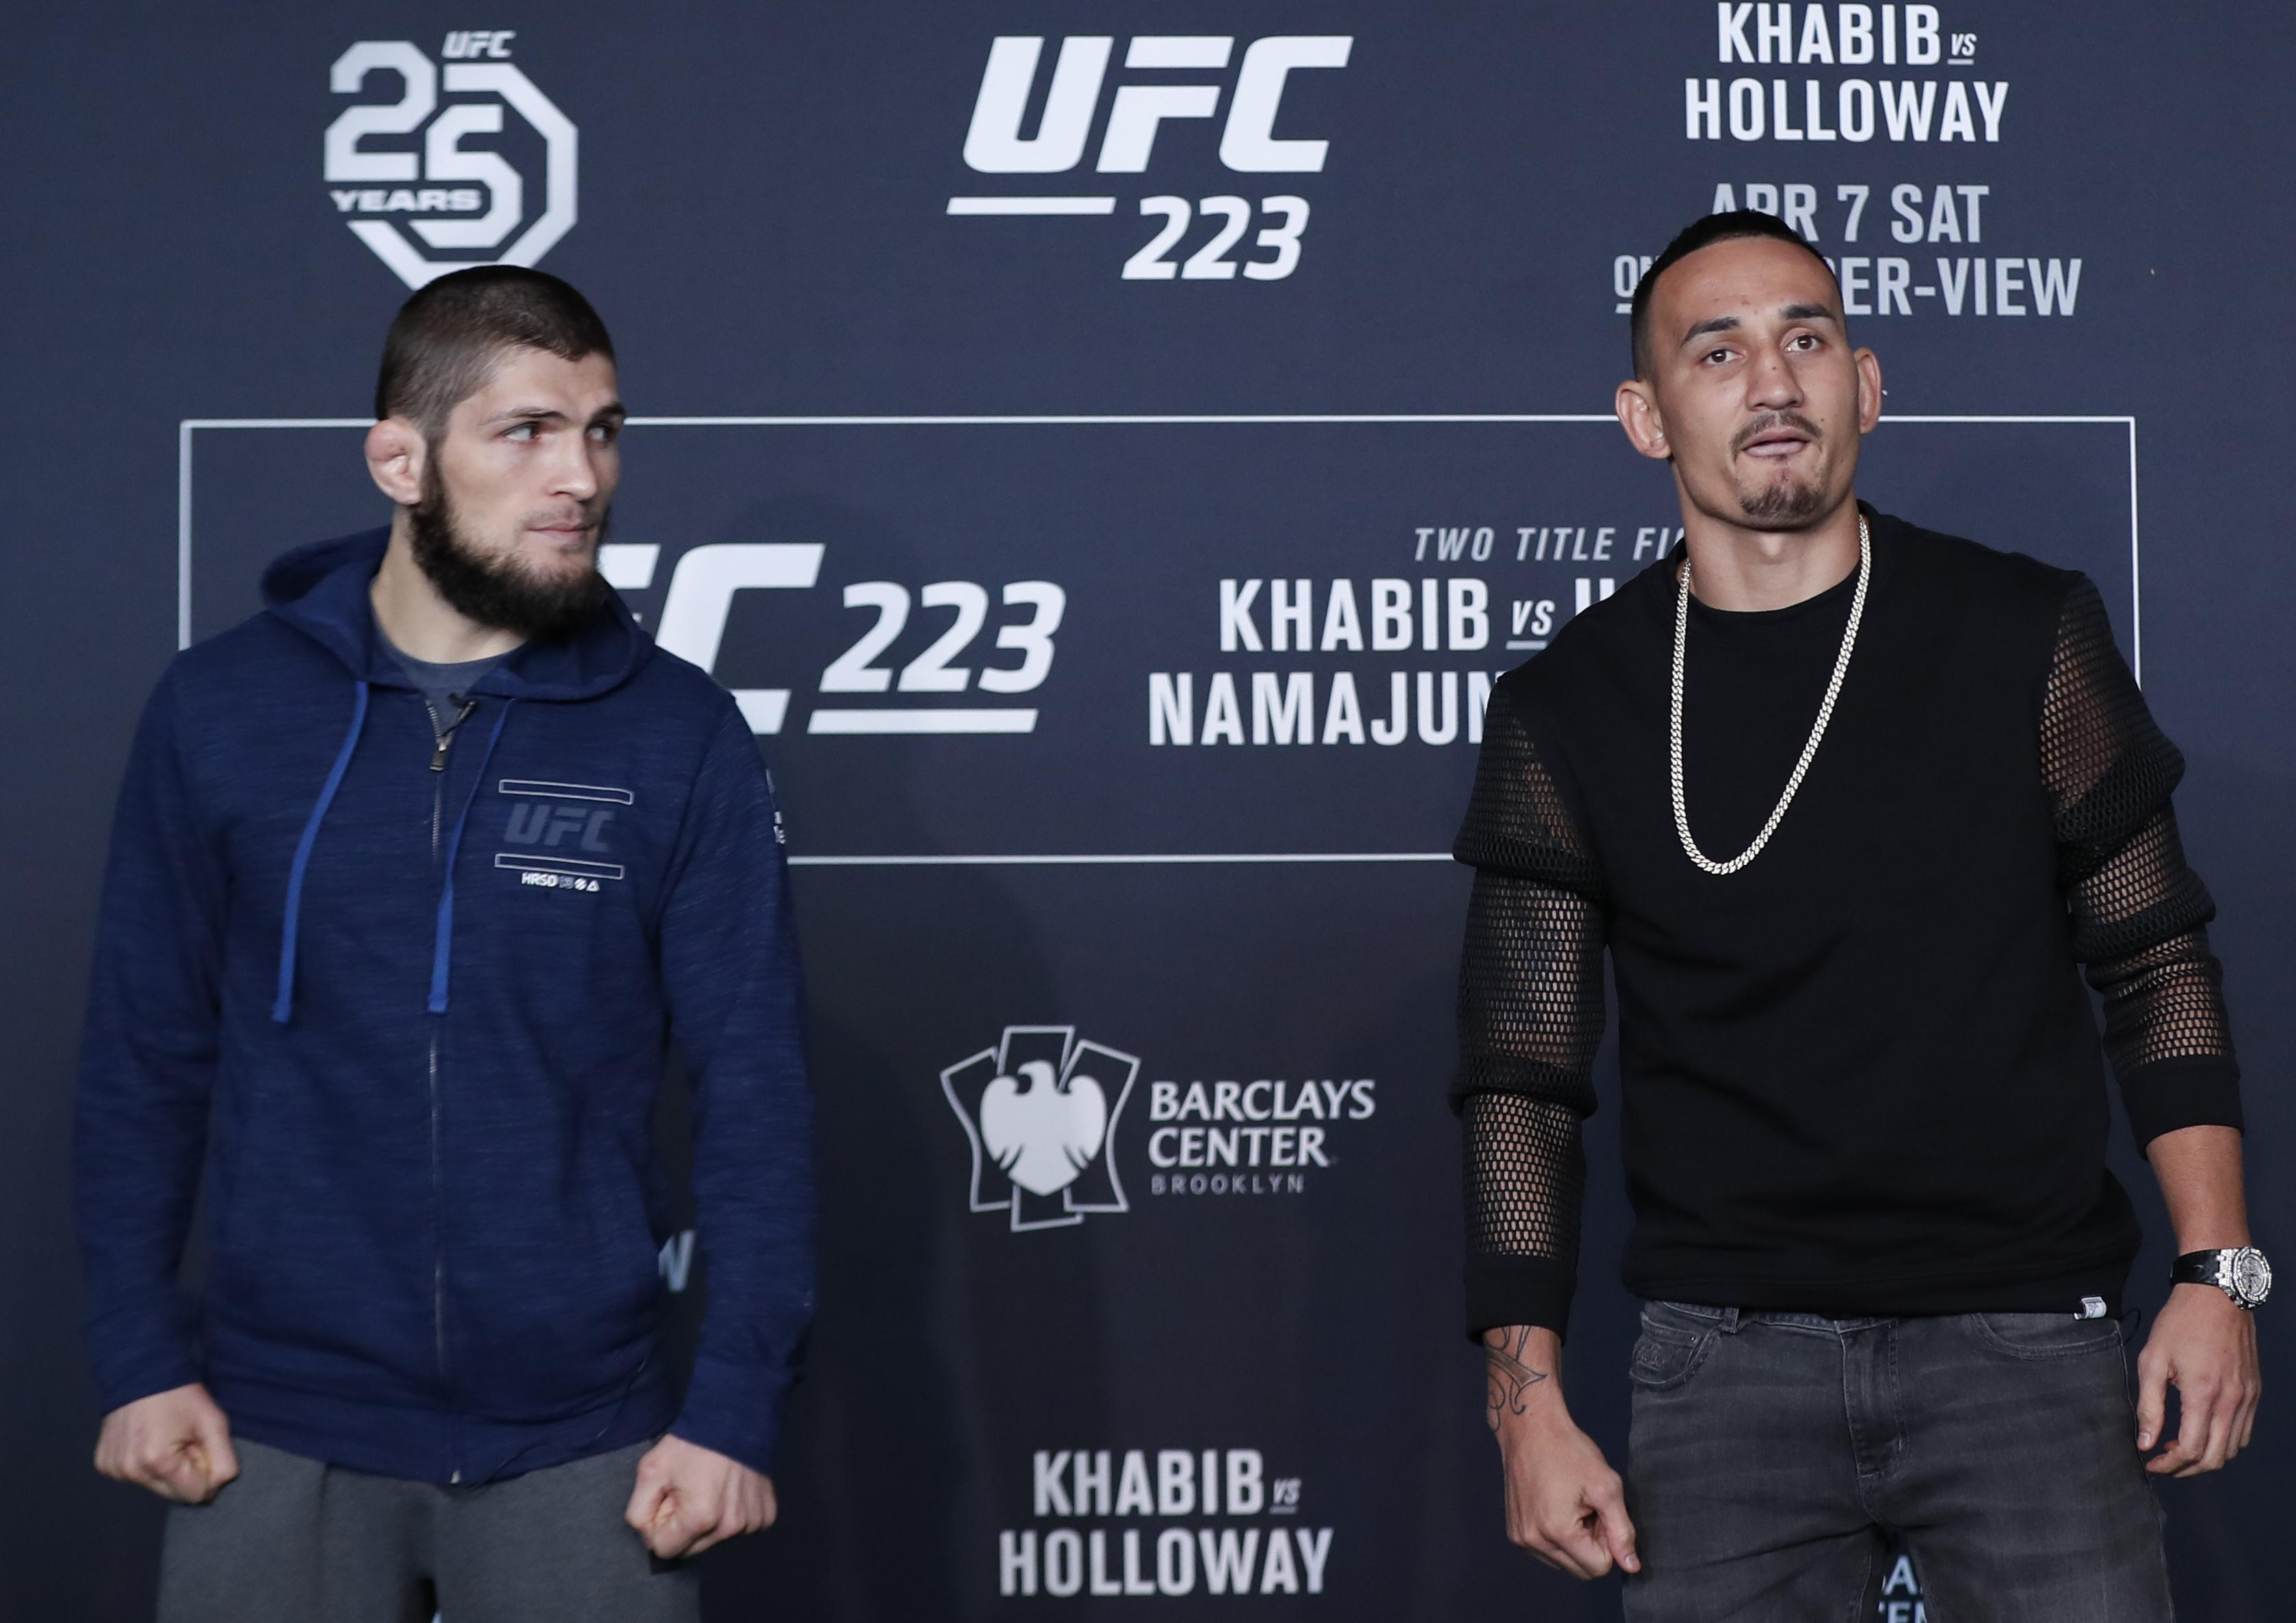 Max Holloway had stepped in at short notice to challenge Khabib Nurmagomedov for Conor McGregor's old lightweight title